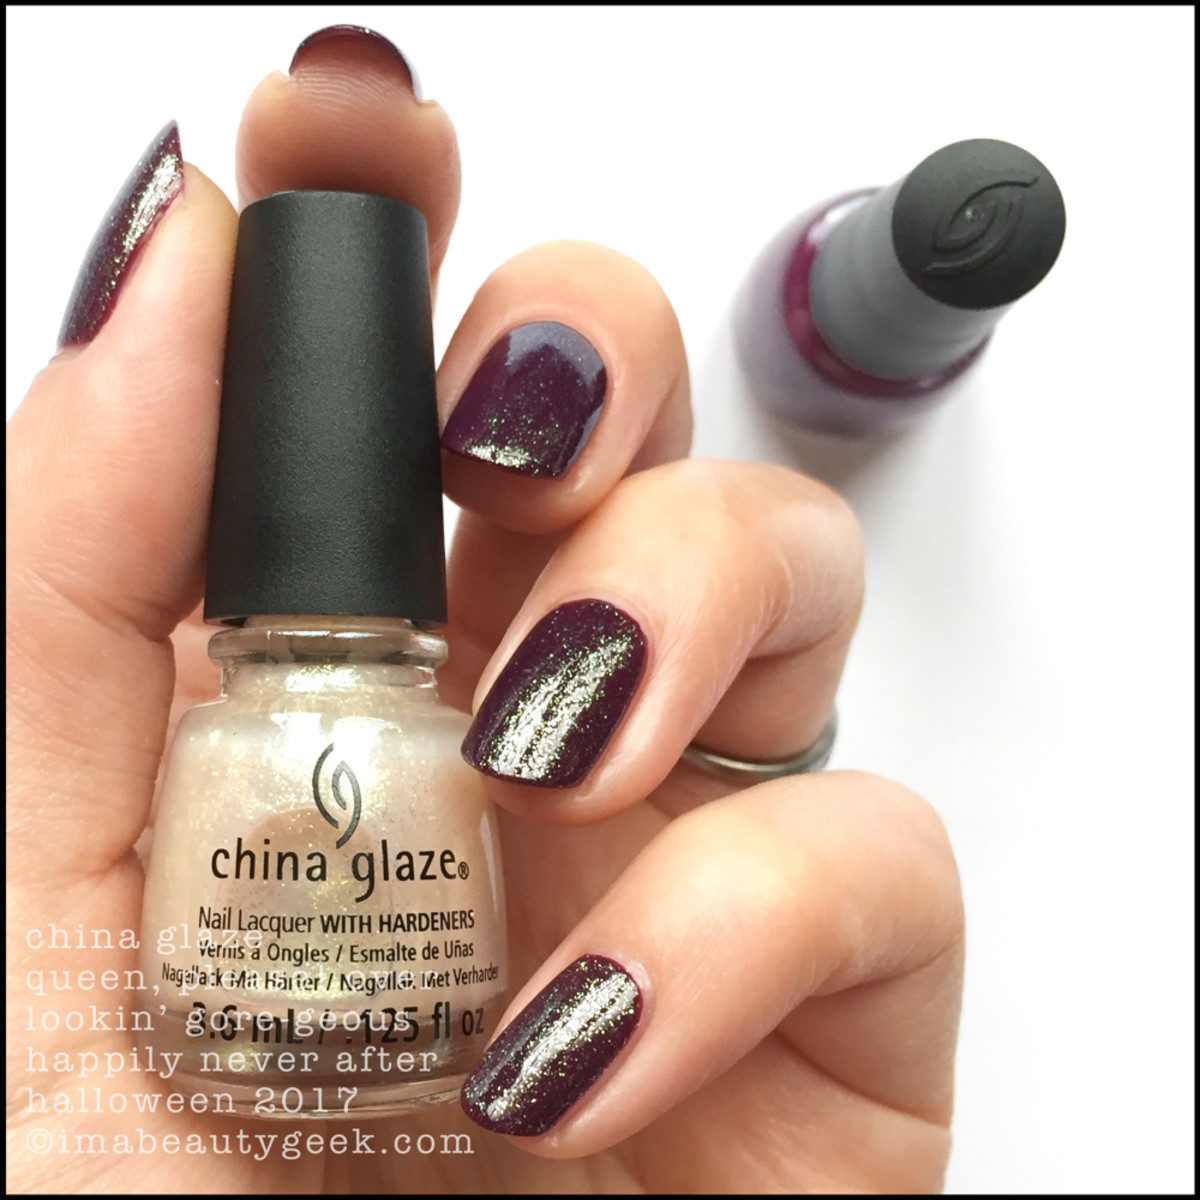 China Glaze Queen, Please! over Lookin' Gore-geous _ China Glaze Happily Never After Collection Halloween 2017